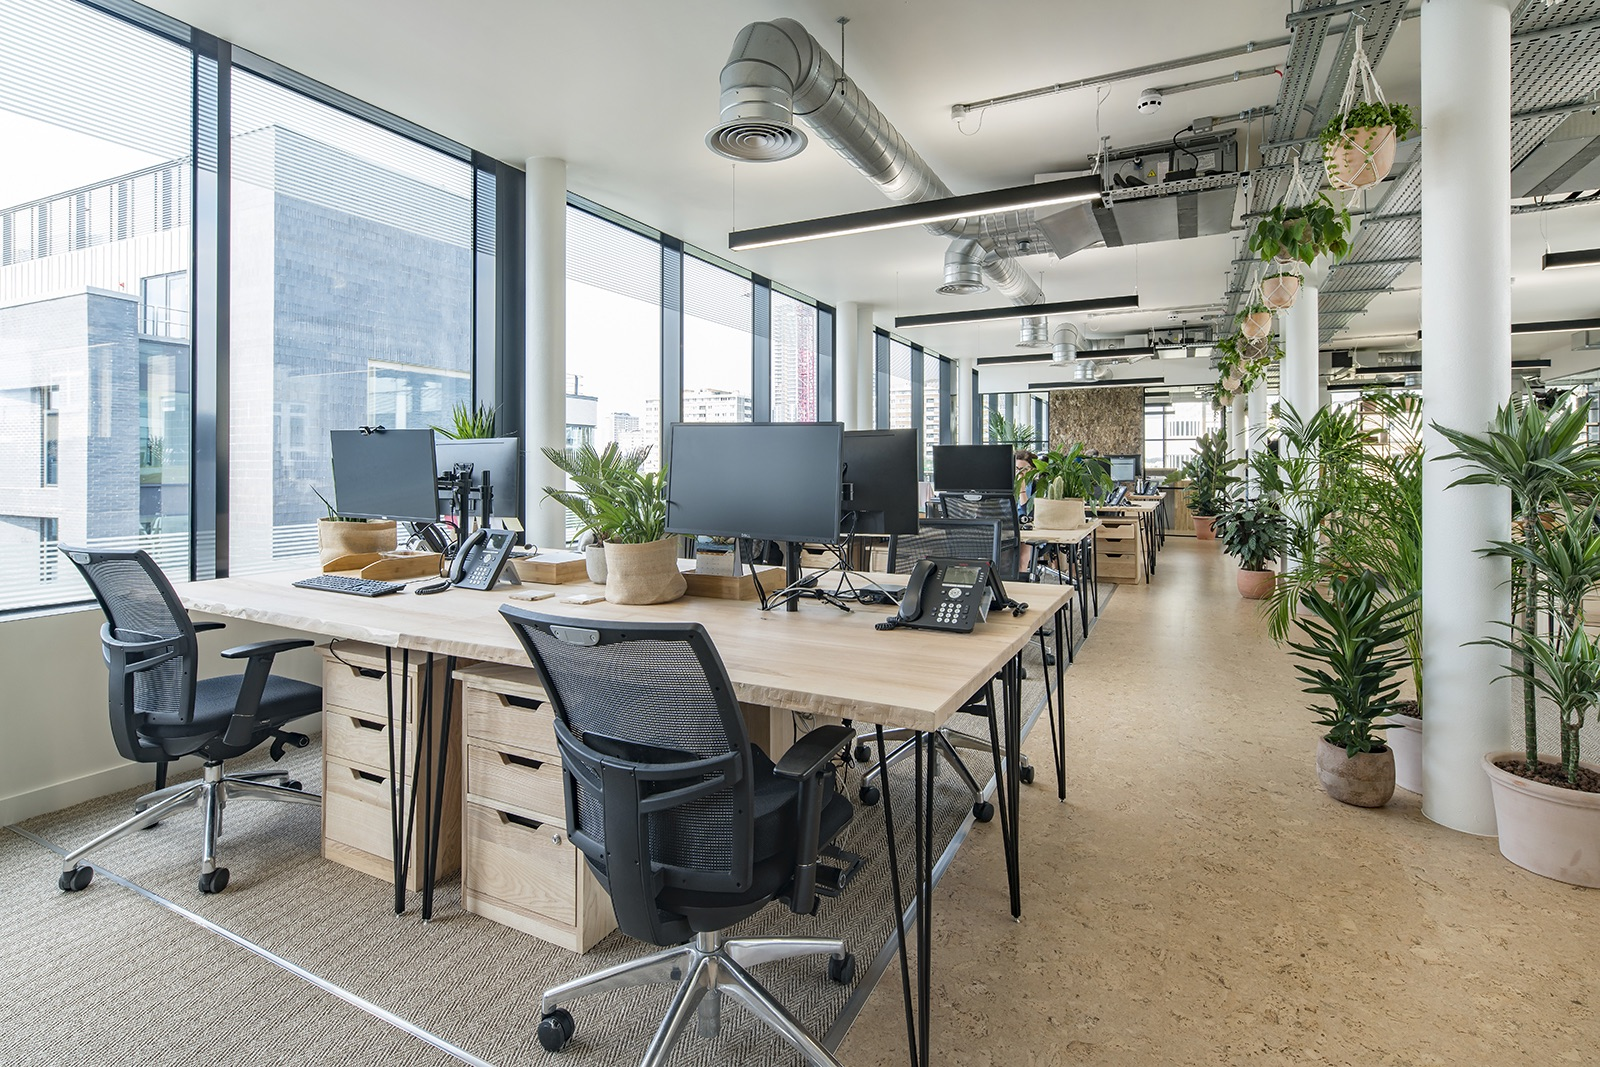 jacada-travel-london-office-8